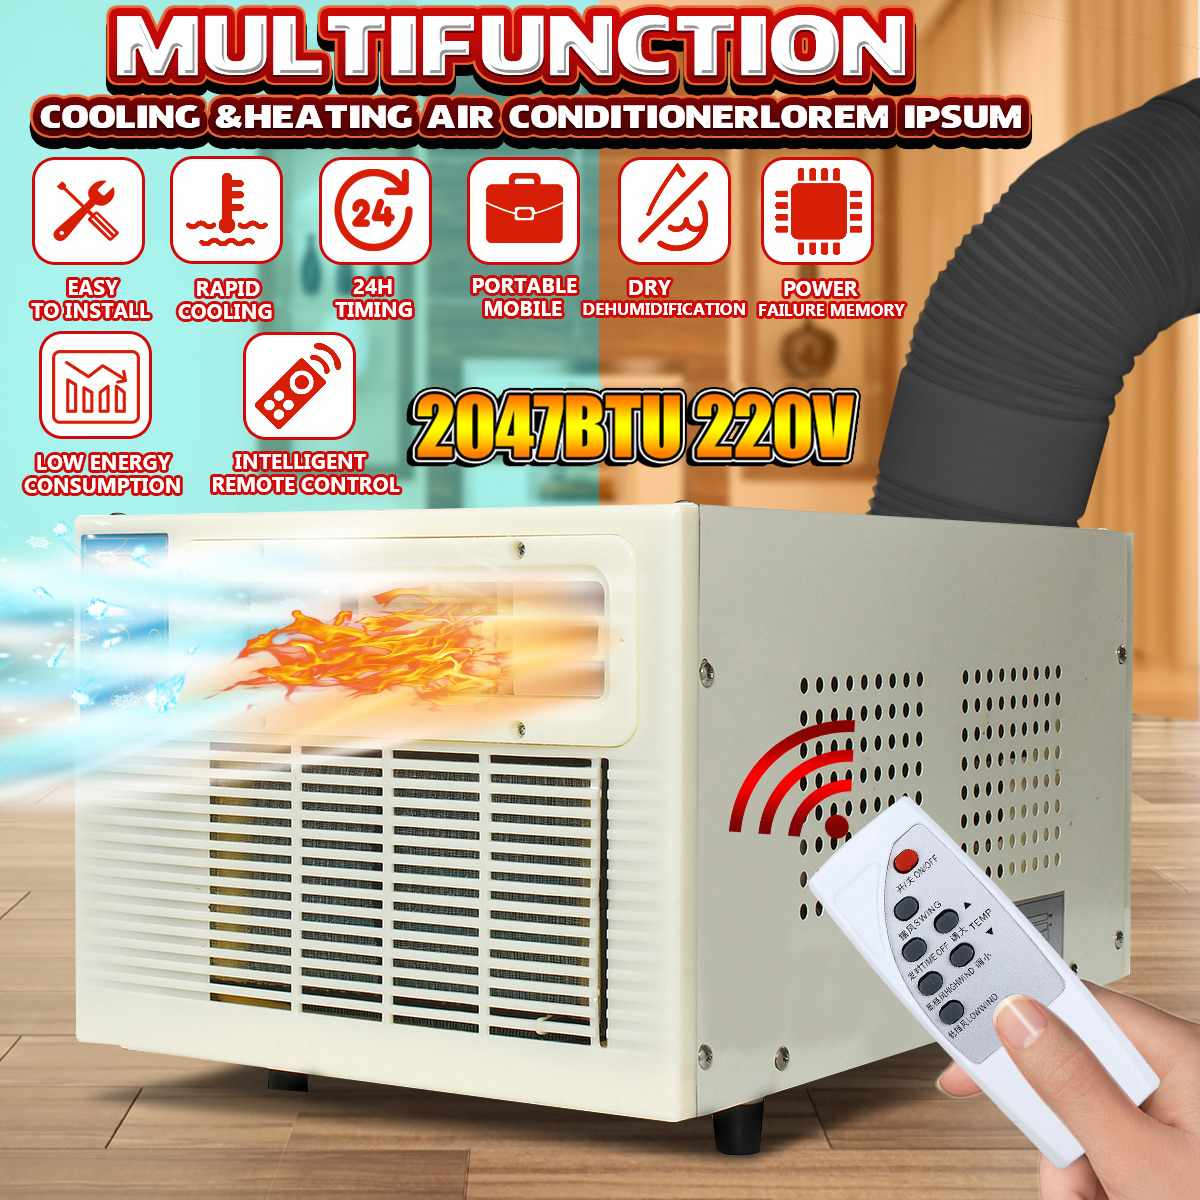 Desktop Air Conditioner 2047BTU 220V Cold/Heat Dual Use Remote Control LED Panel 24h Timer Cooler Heater With Free Exhaust Pipe